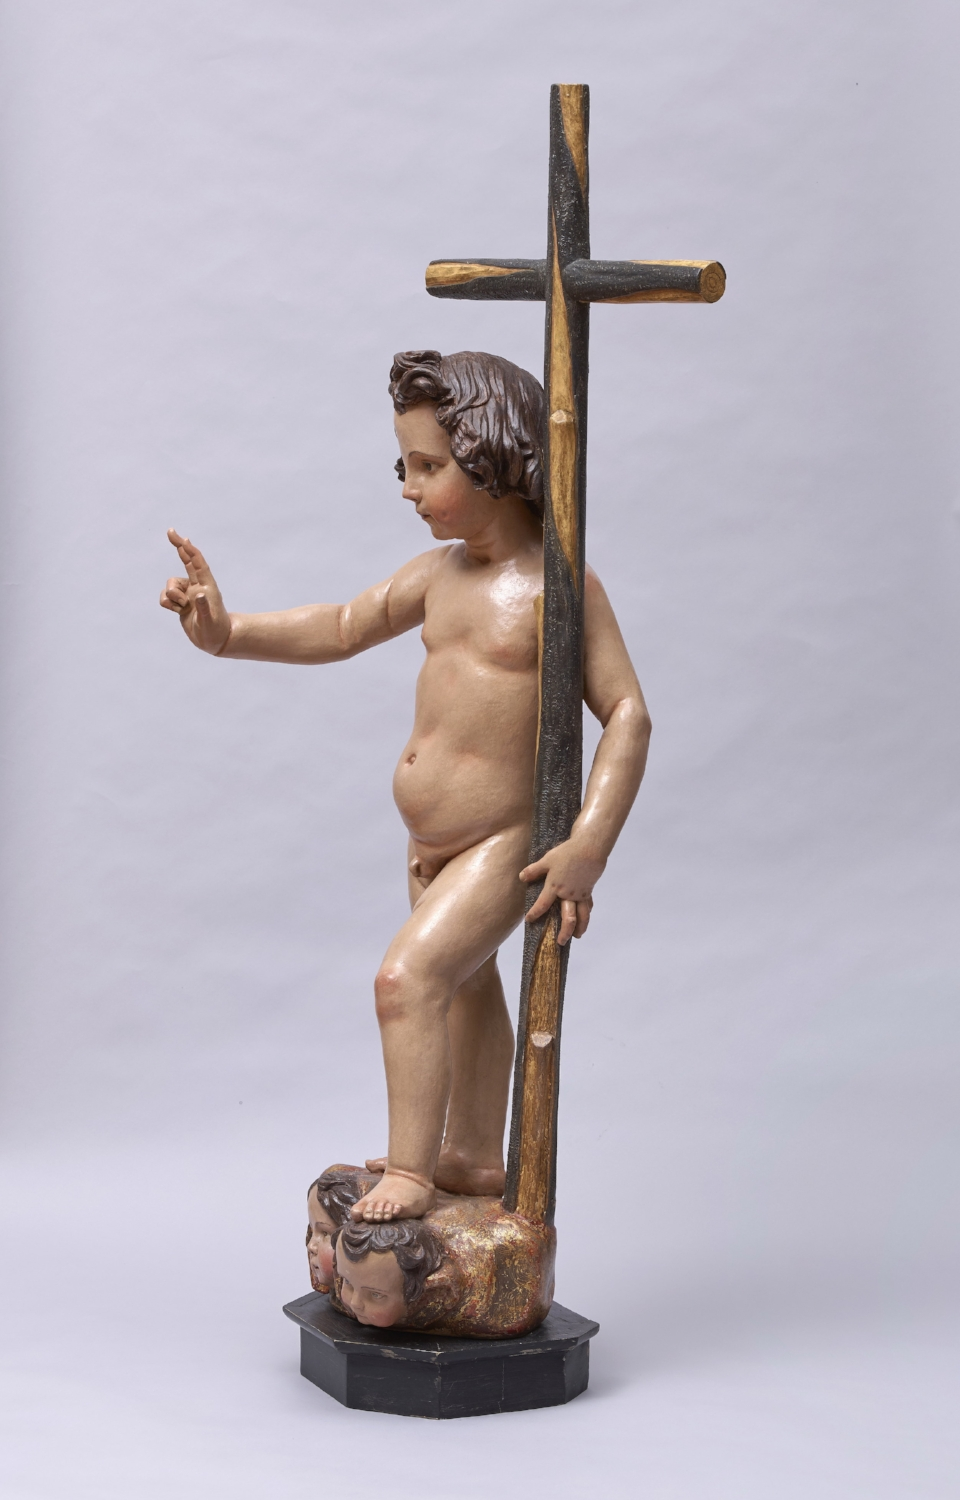 Francisco Dionisio de Ribas, Infant Jesus in triumph - View from the Right